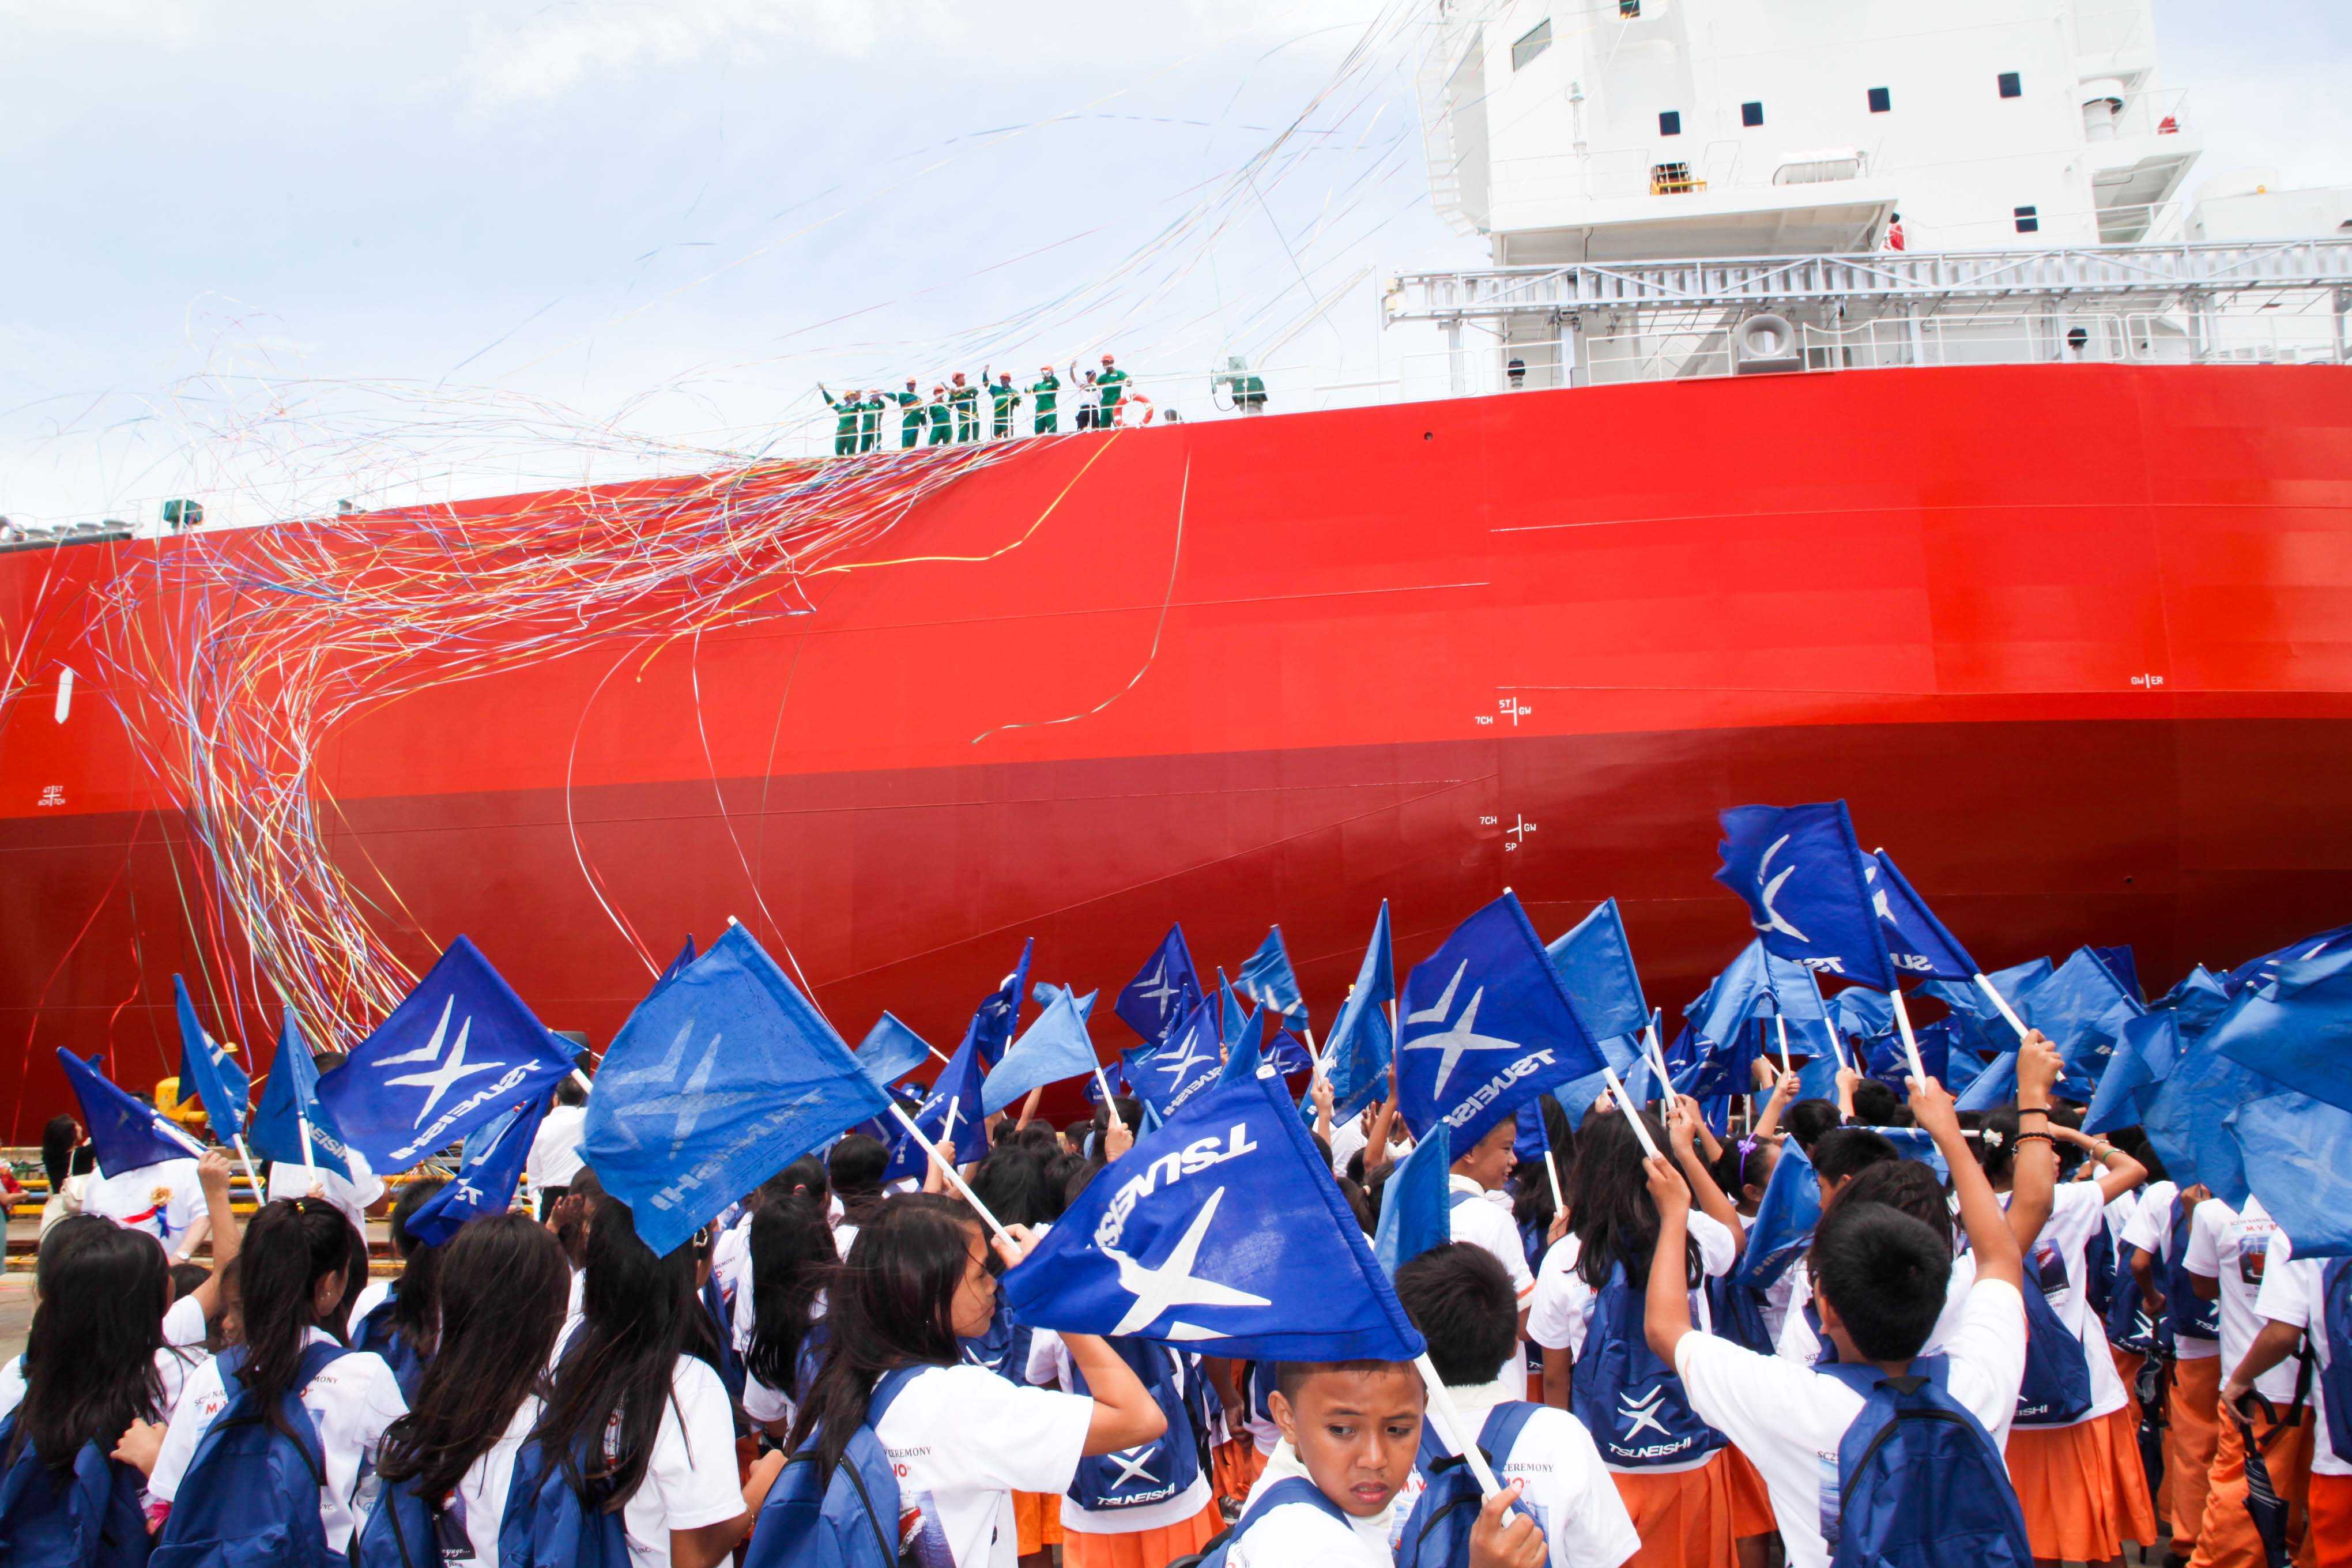 TSUNEISHI HEAVY INDUSTRIES completes 201 ships